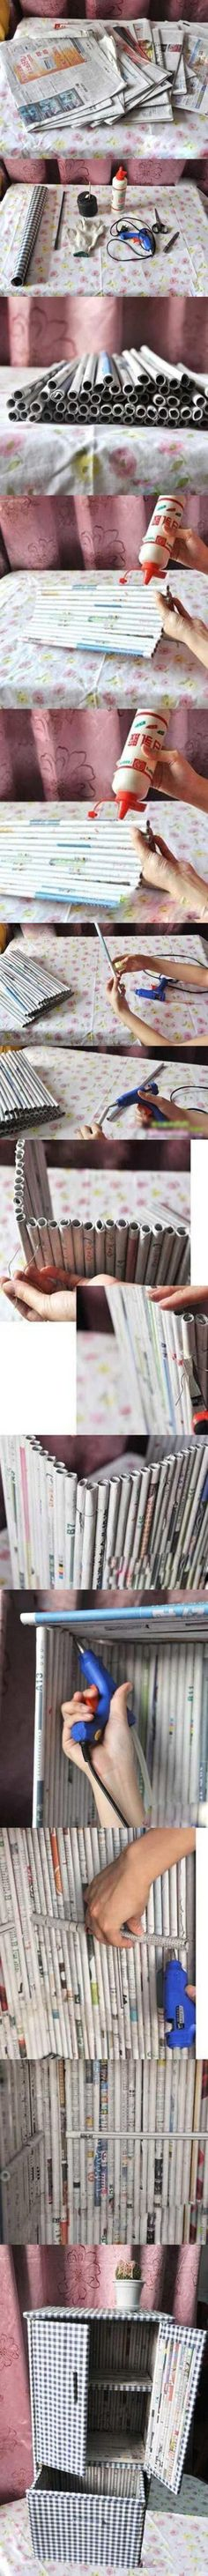 Reuse the newspapers | DIY real